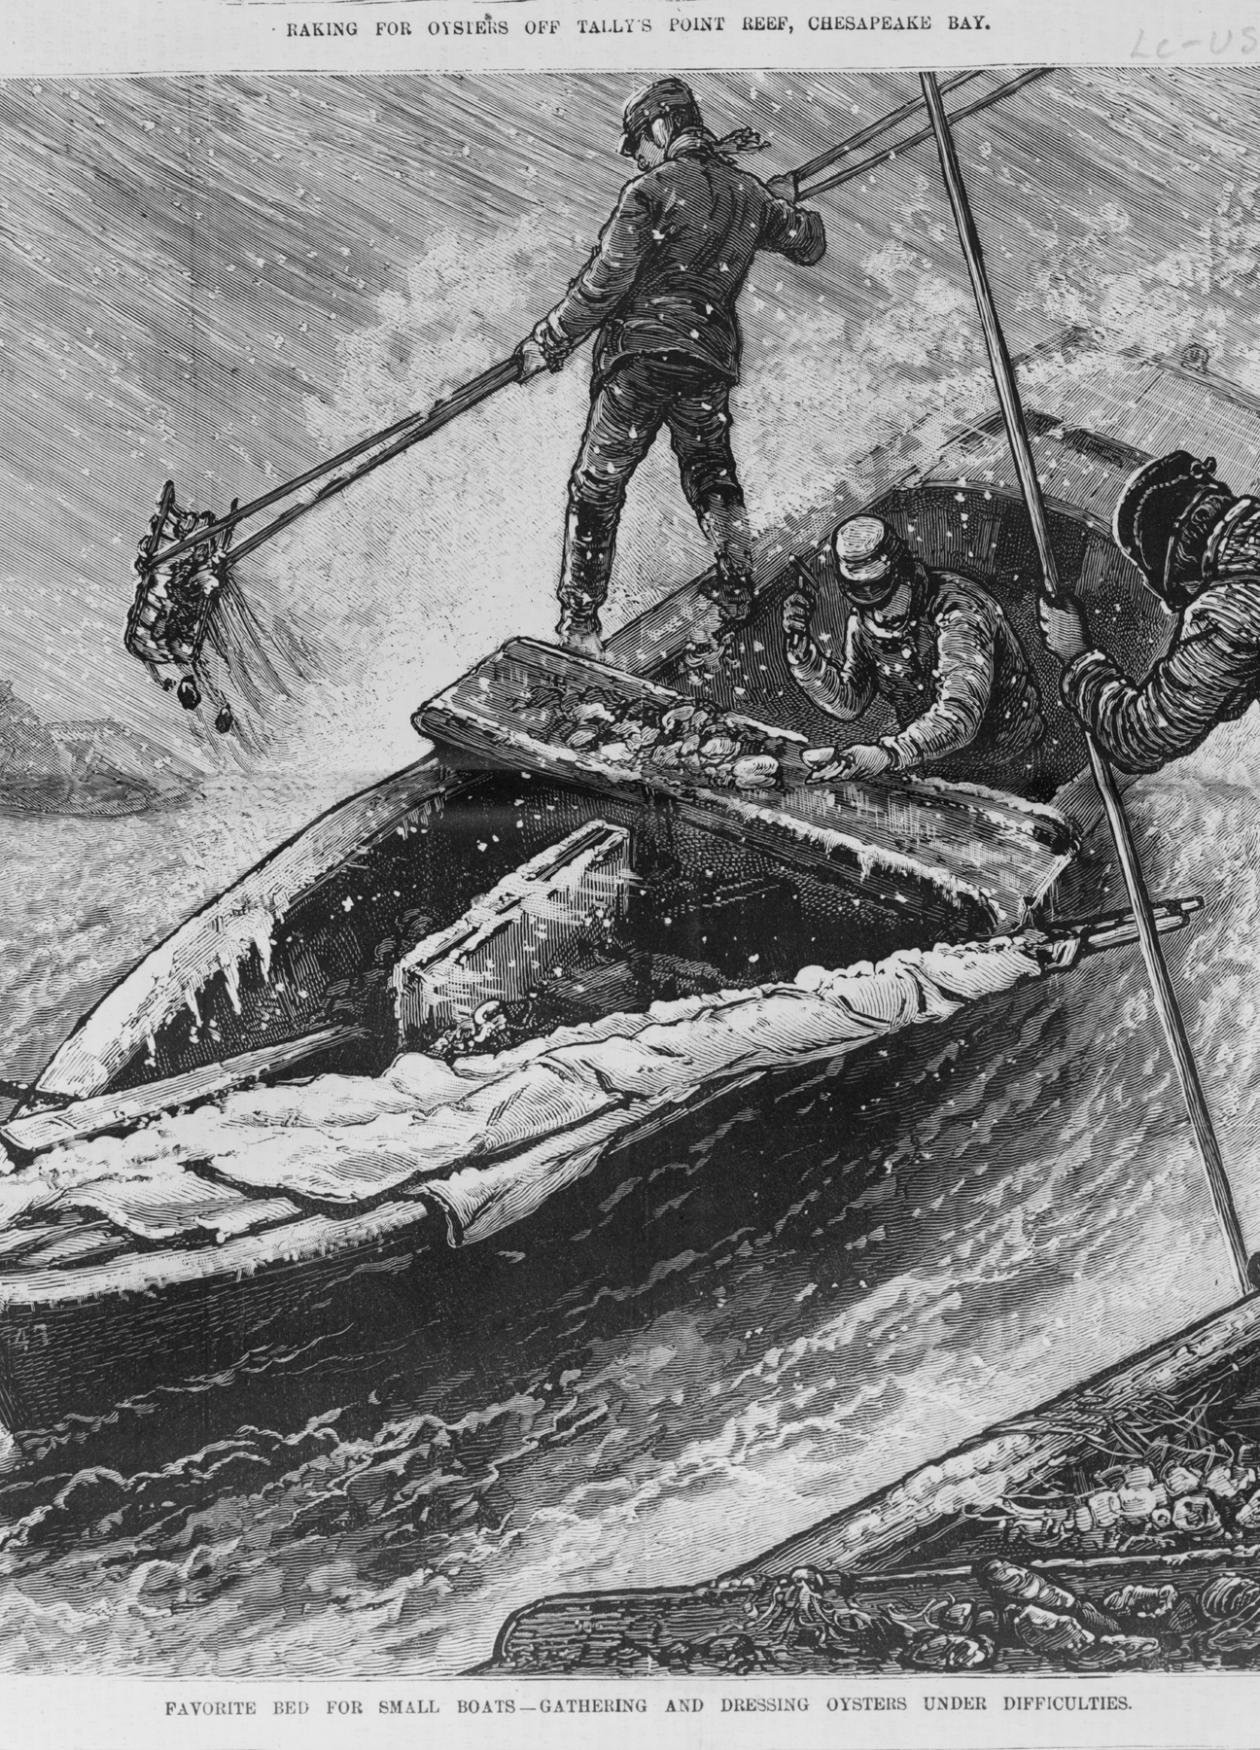 Engraving of men working on an oyster boat in choppy, stormy waters